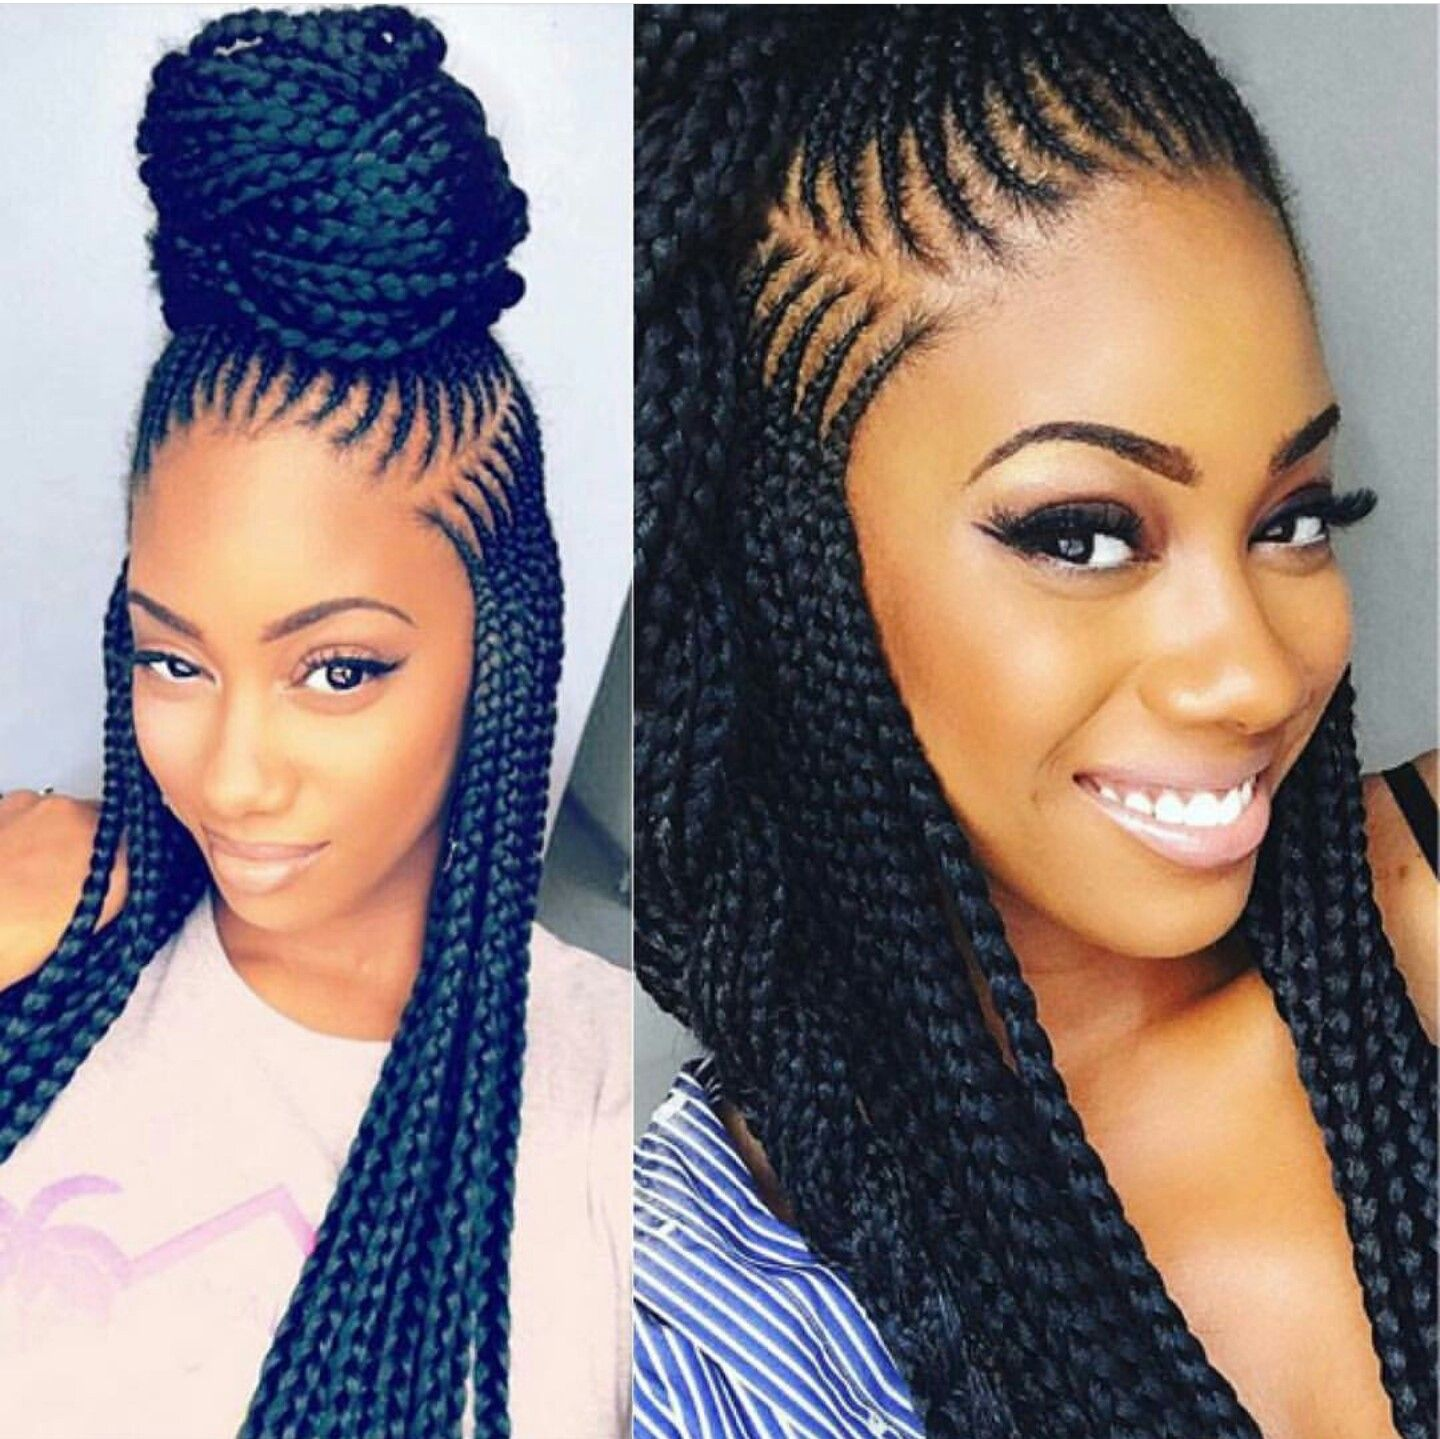 Pin By Gess On Braids Braided Hairstyles Hair Styles African Braids Hairstyles